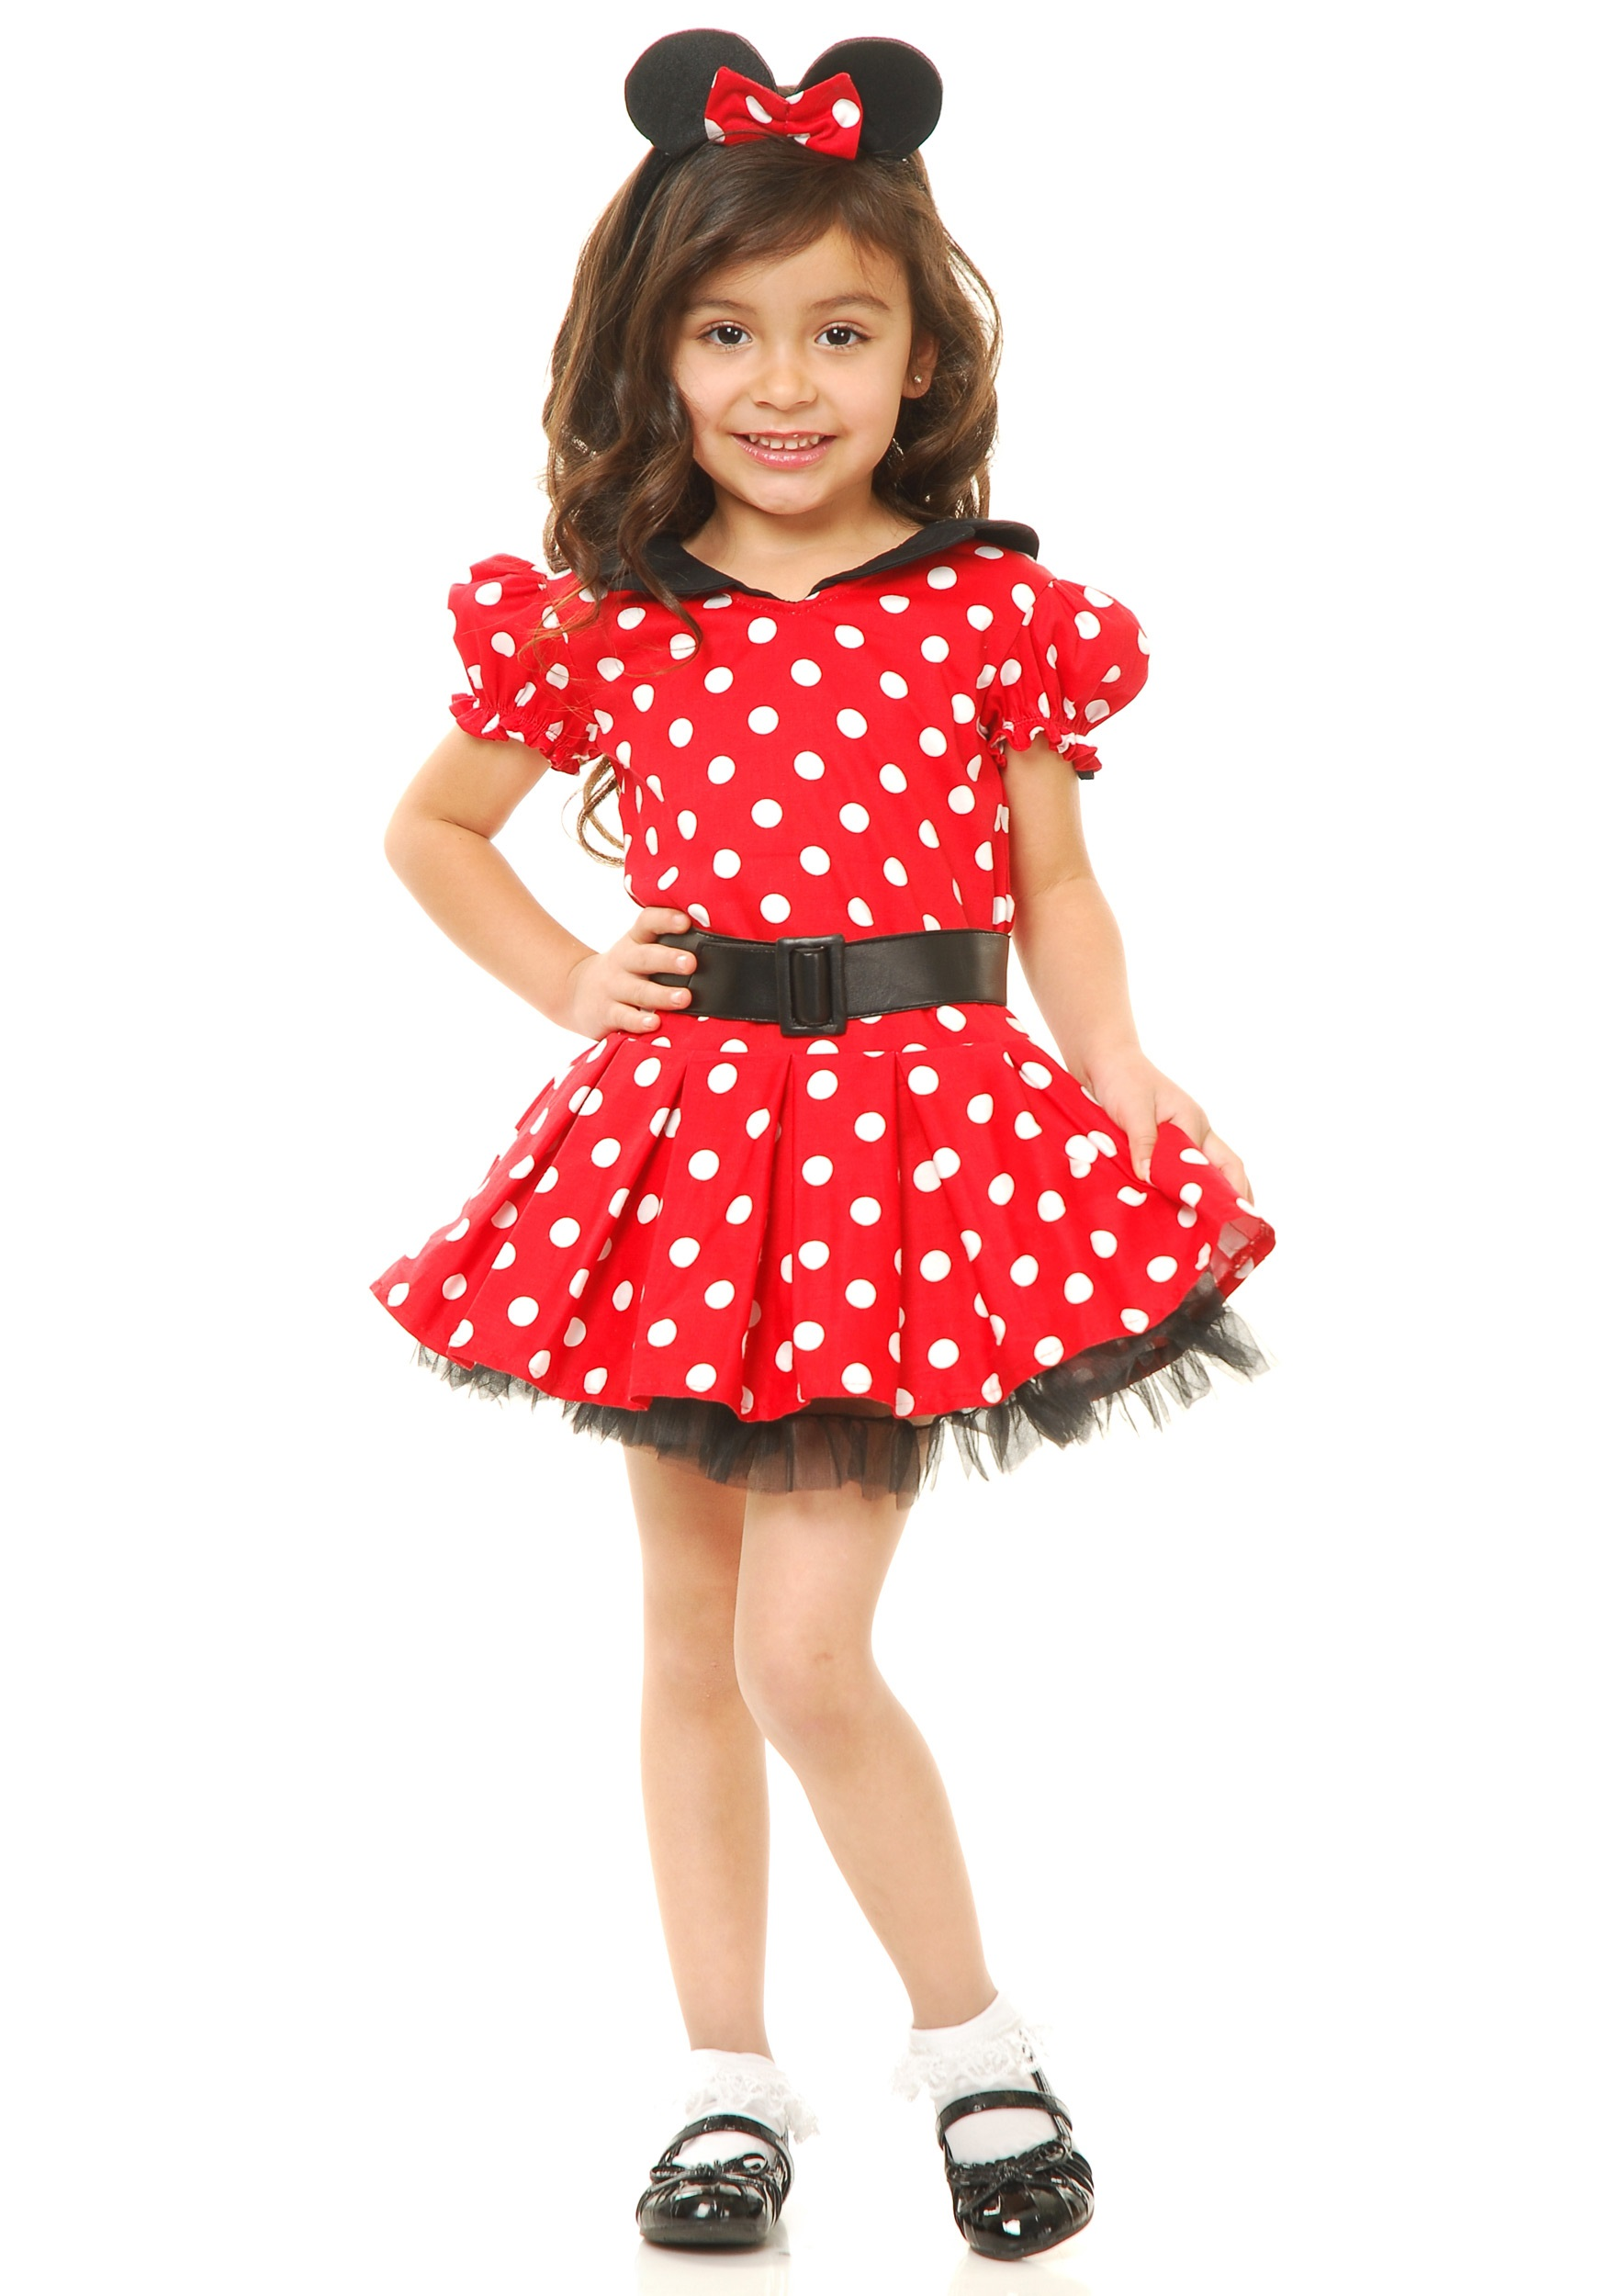 Find great deals on Girls Kids Minnie Mouse Clothing at Kohl's today! Sponsored Links Outside companies pay to advertise via these links .